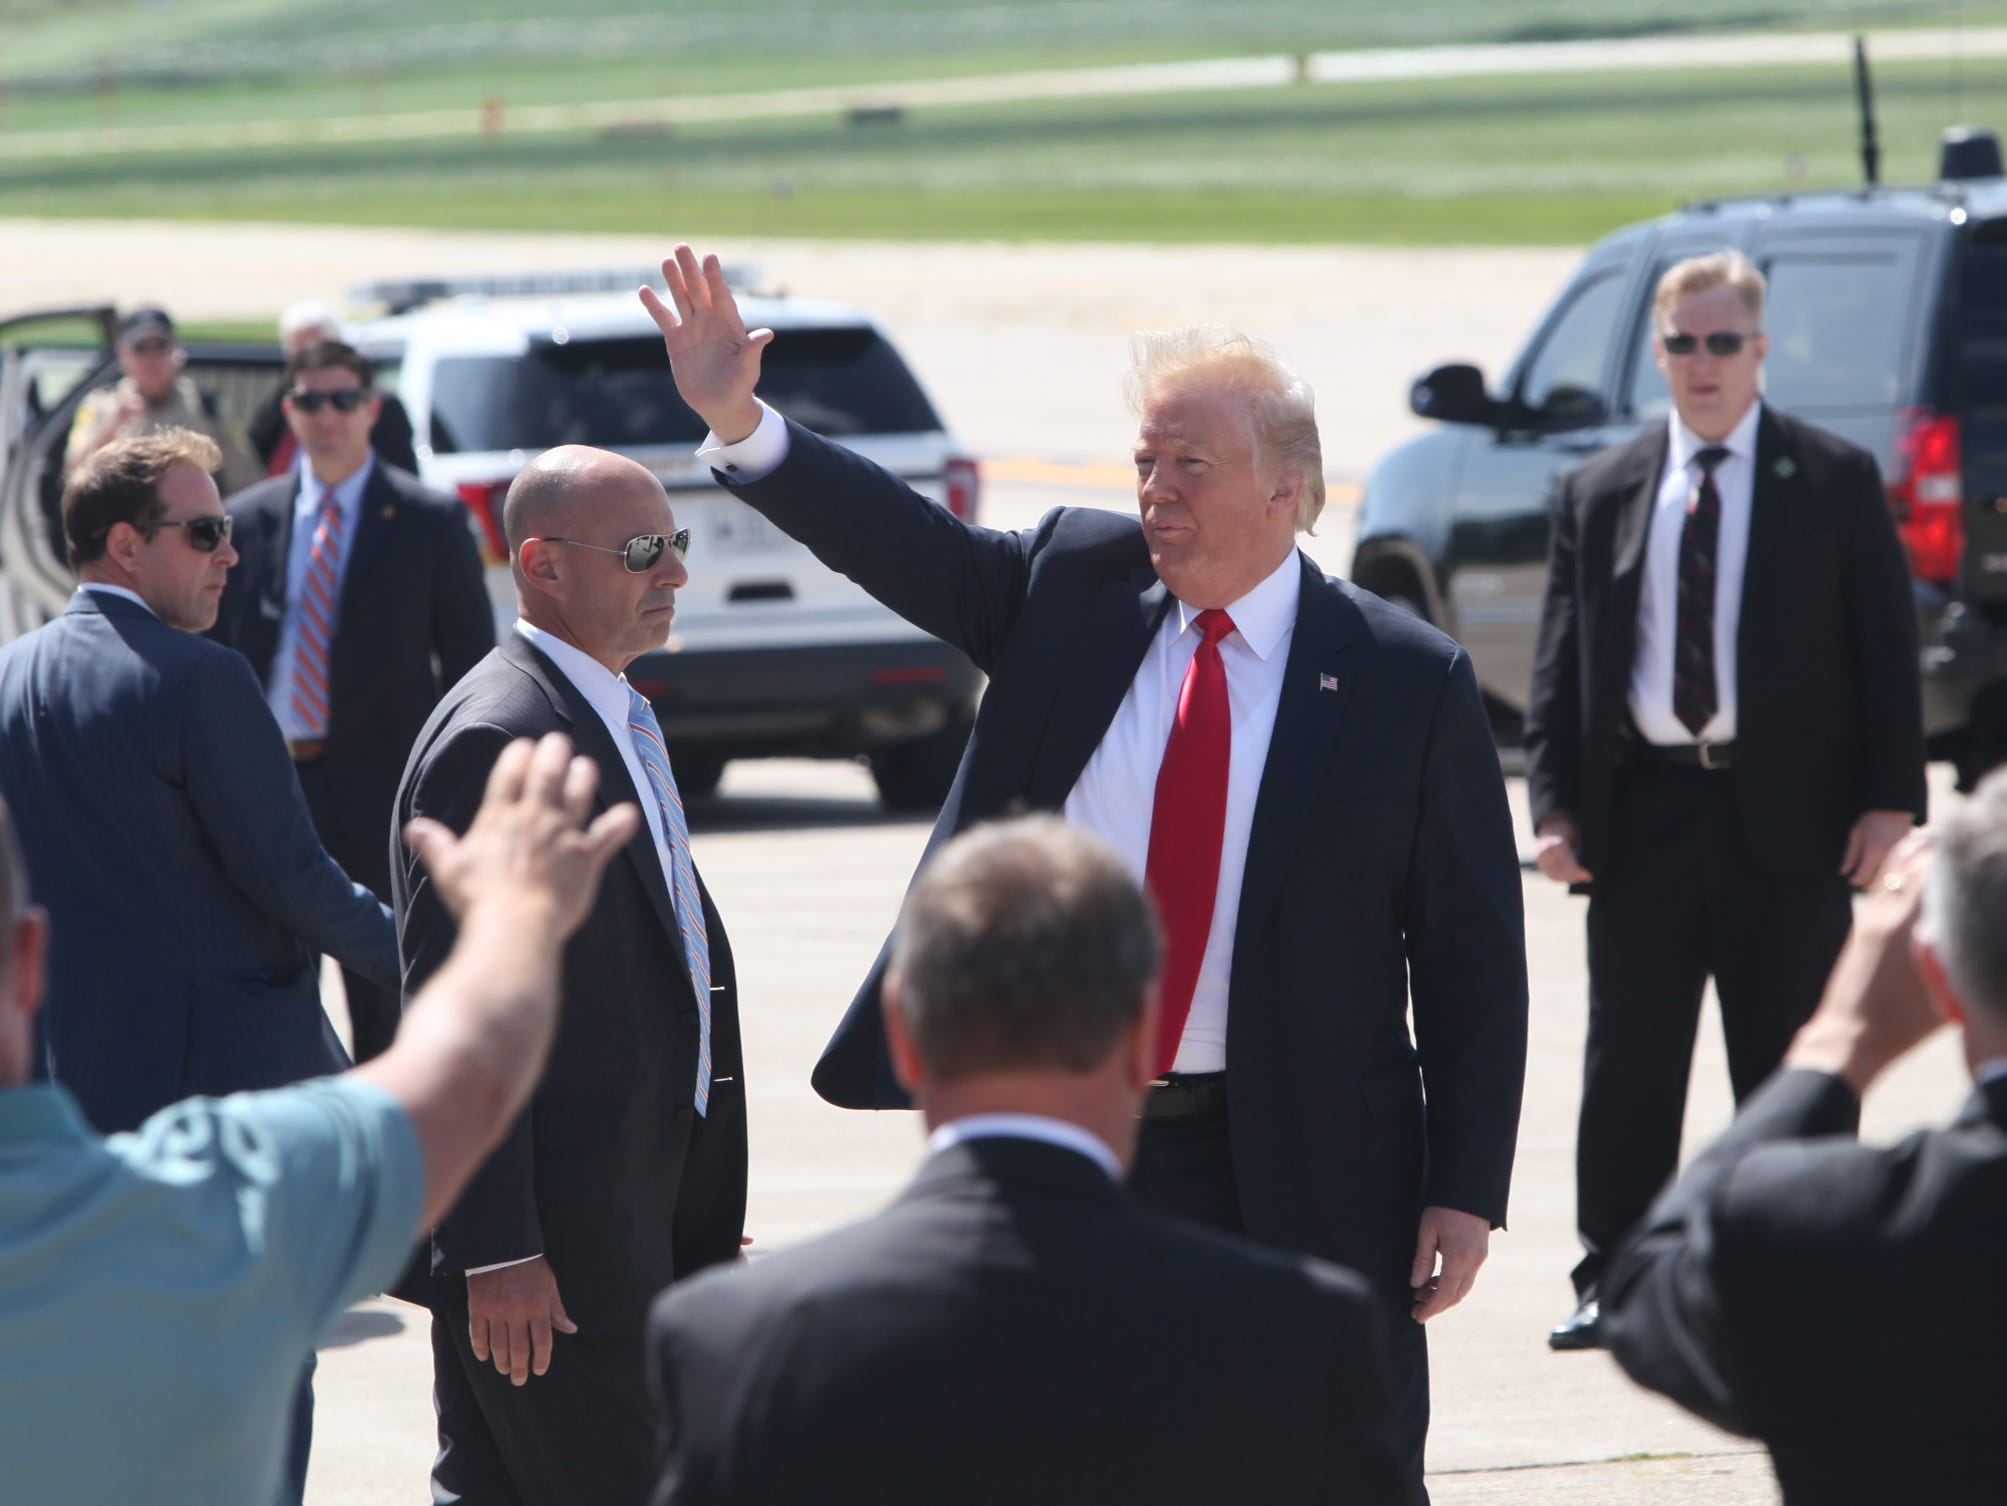 President Donald Trump greets guests after arriving at Dubuque Regional Airport in Dubuque, Iowa on Thursday morning, July 26, 2018. Trump will be visiting Northeast Iowa Community College to participate in a roundtable discussion about workforce development.